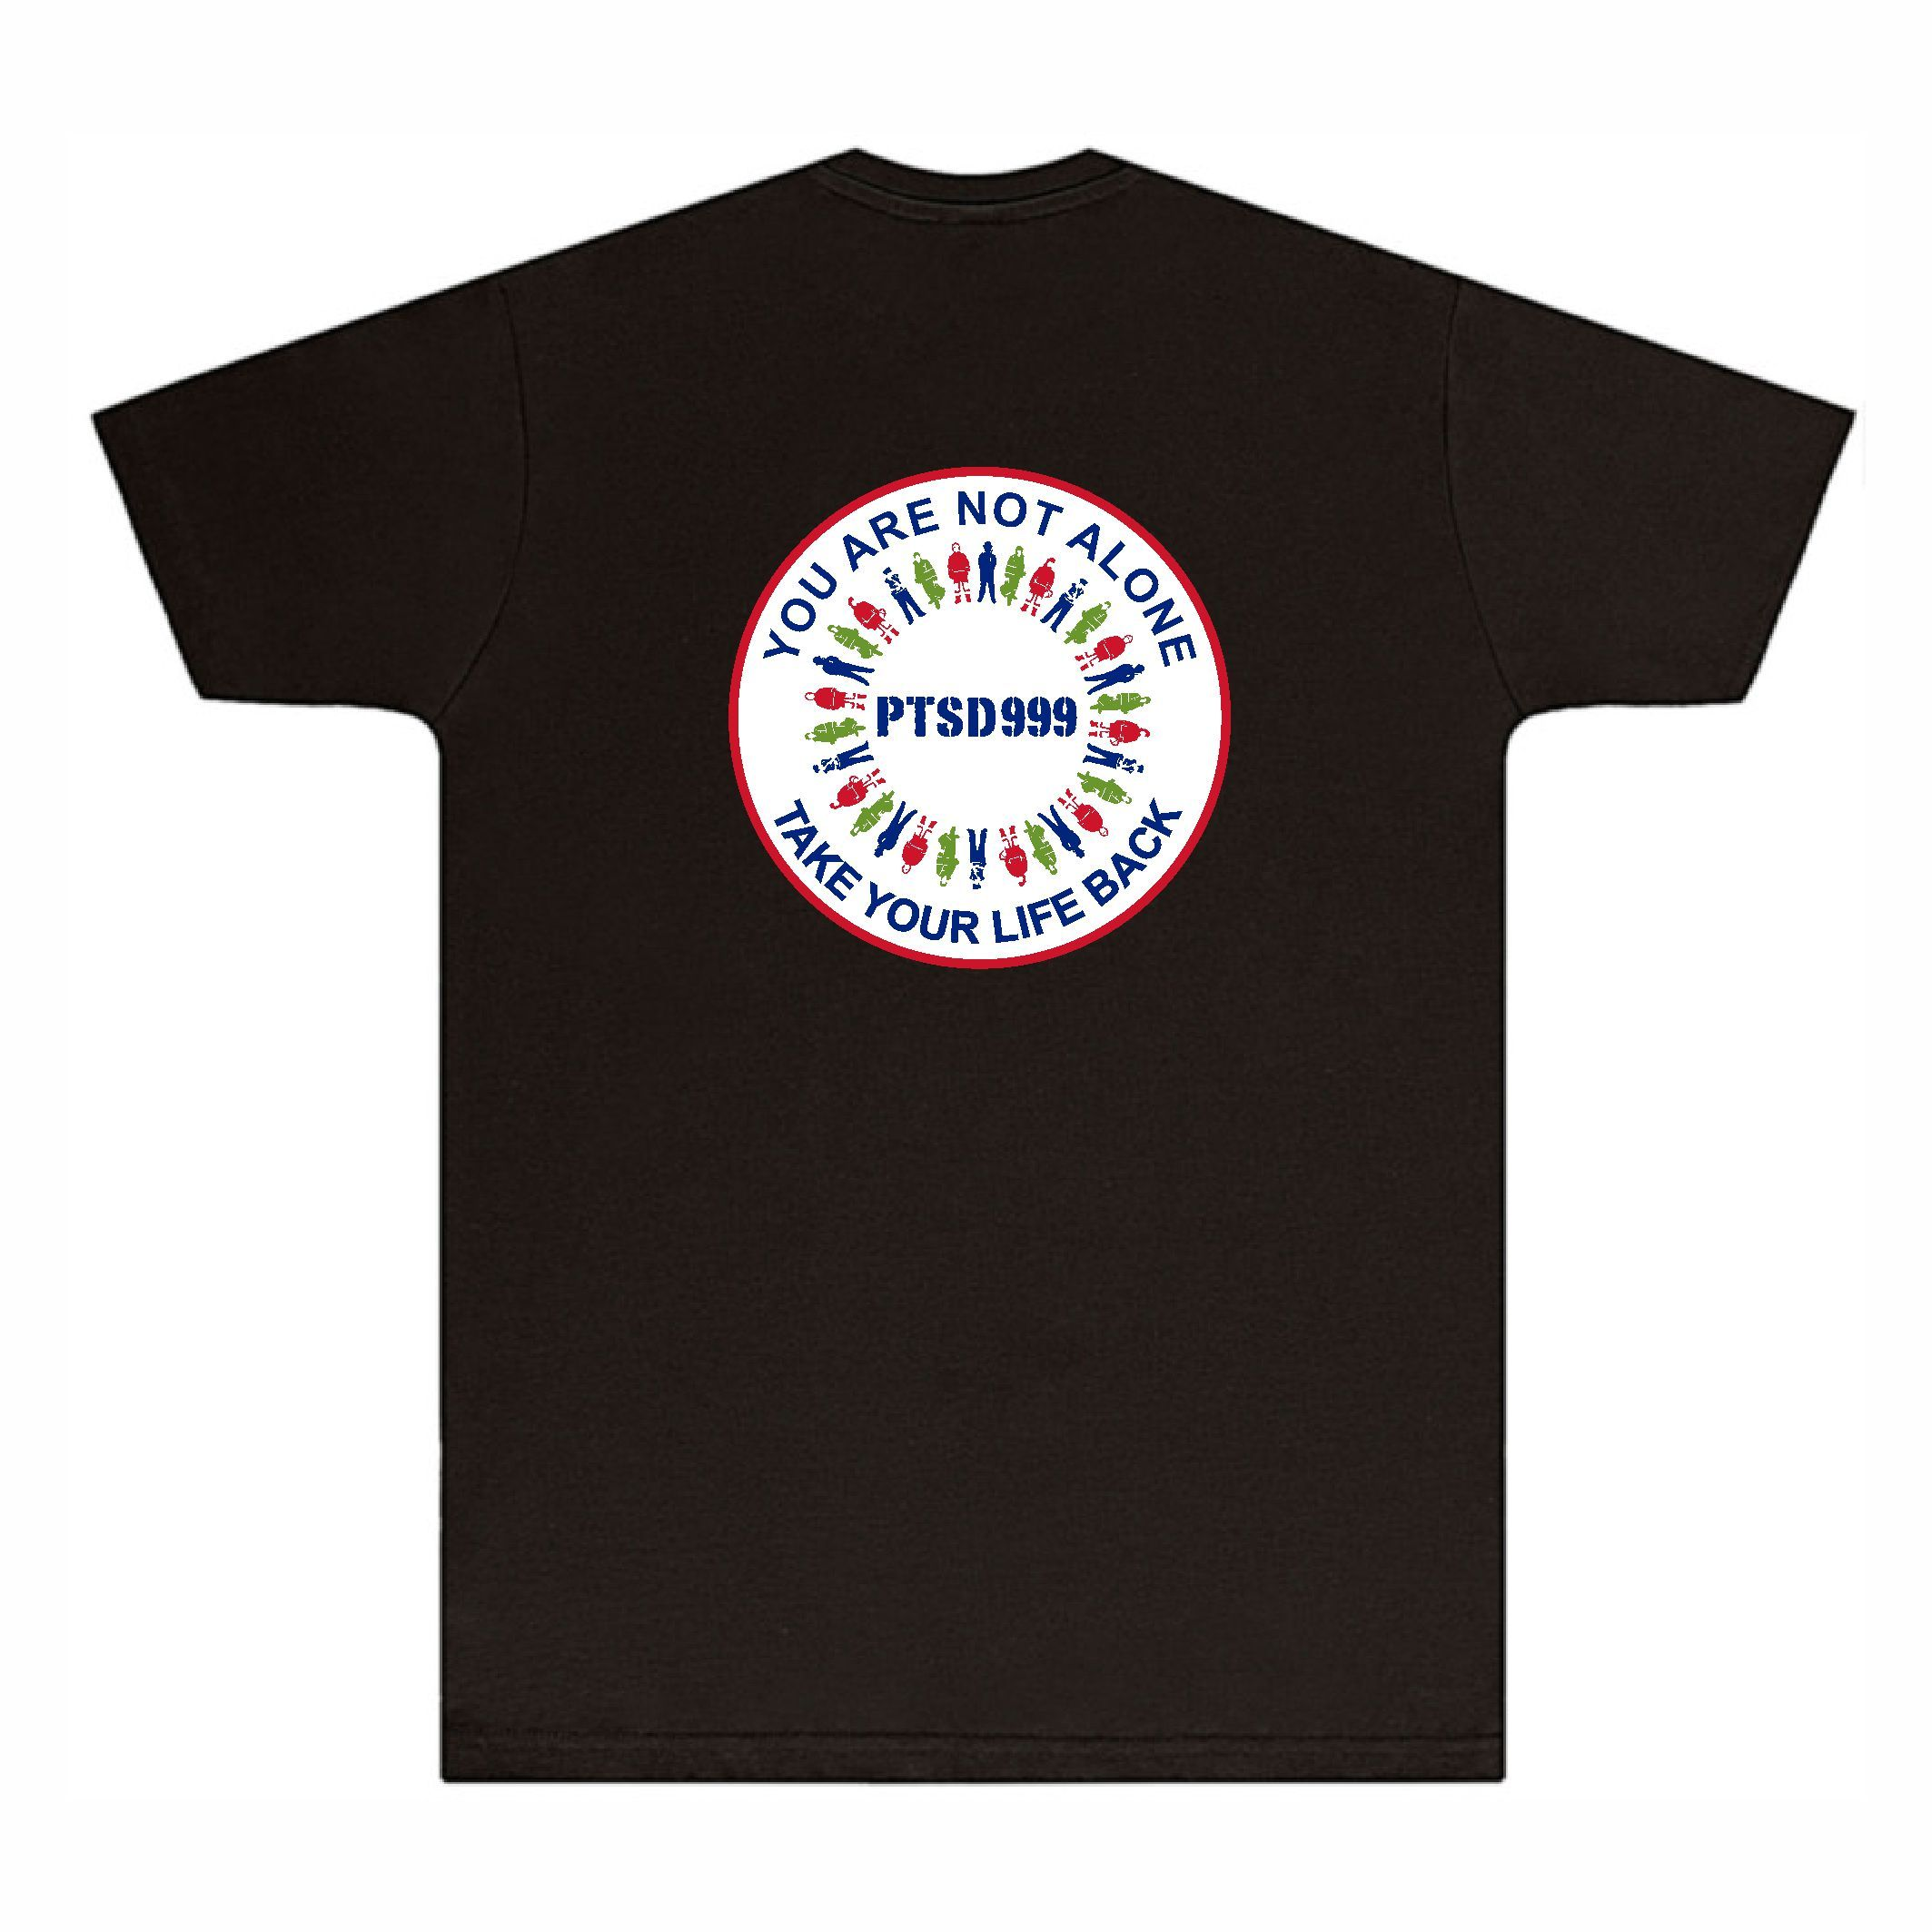 PTSD999- 'You Are Not Alone' Men's Tee